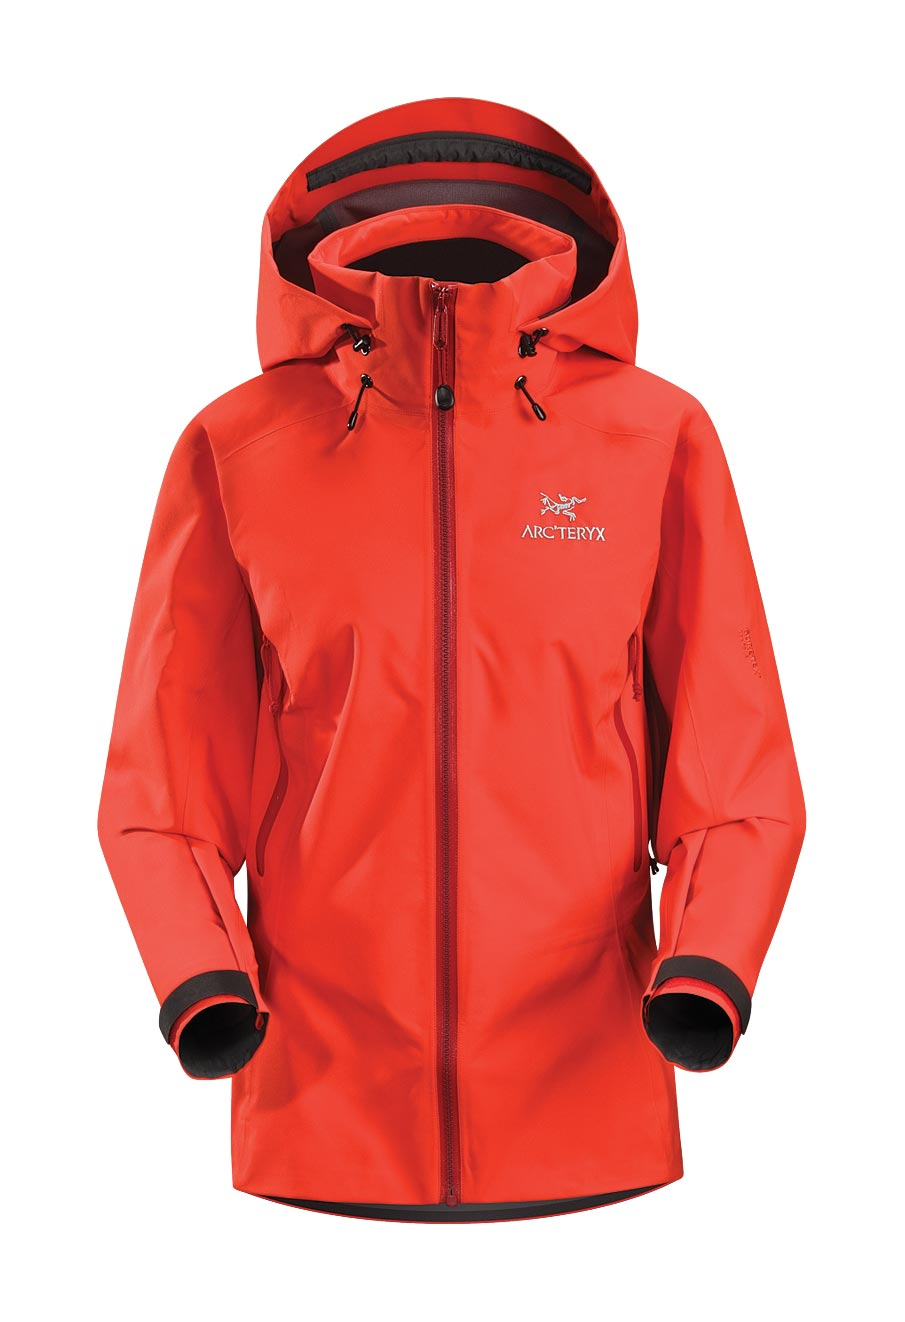 Arcteryx Poppy Beta AR Jacket